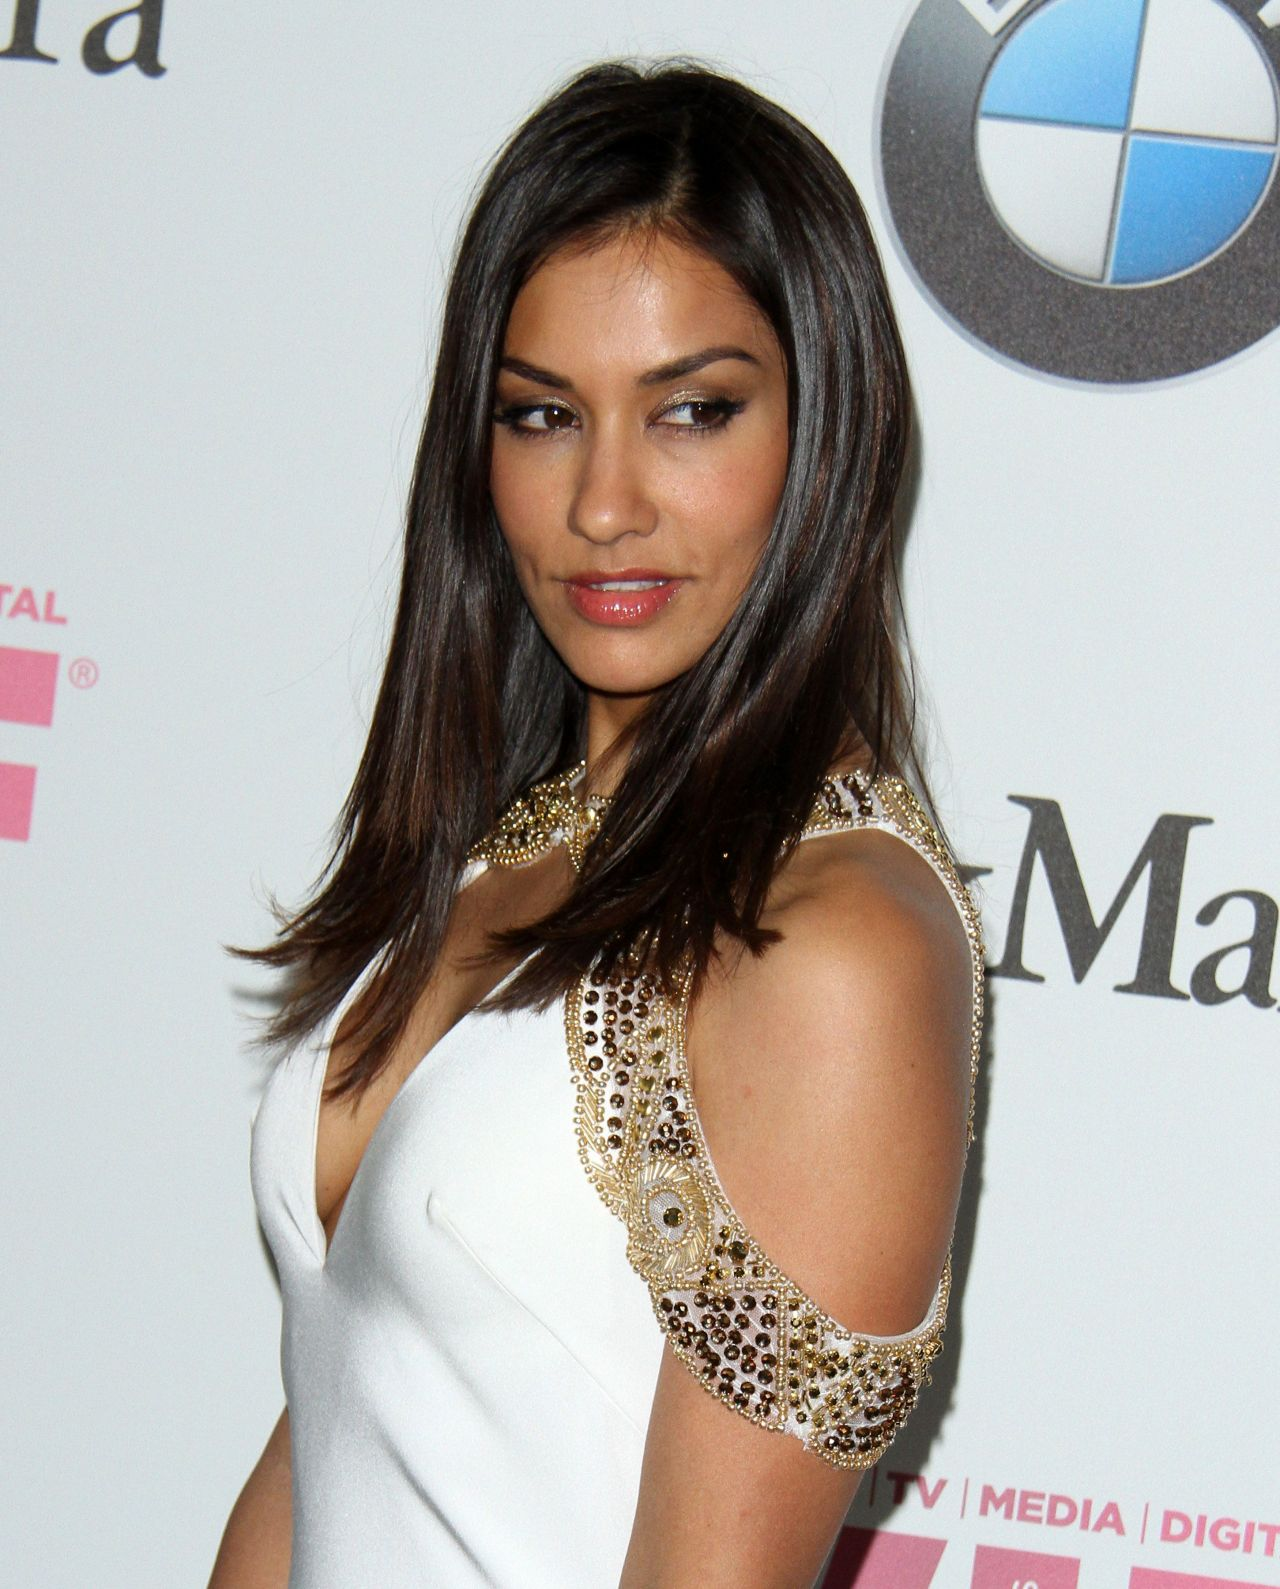 janina gavankar - photo #2